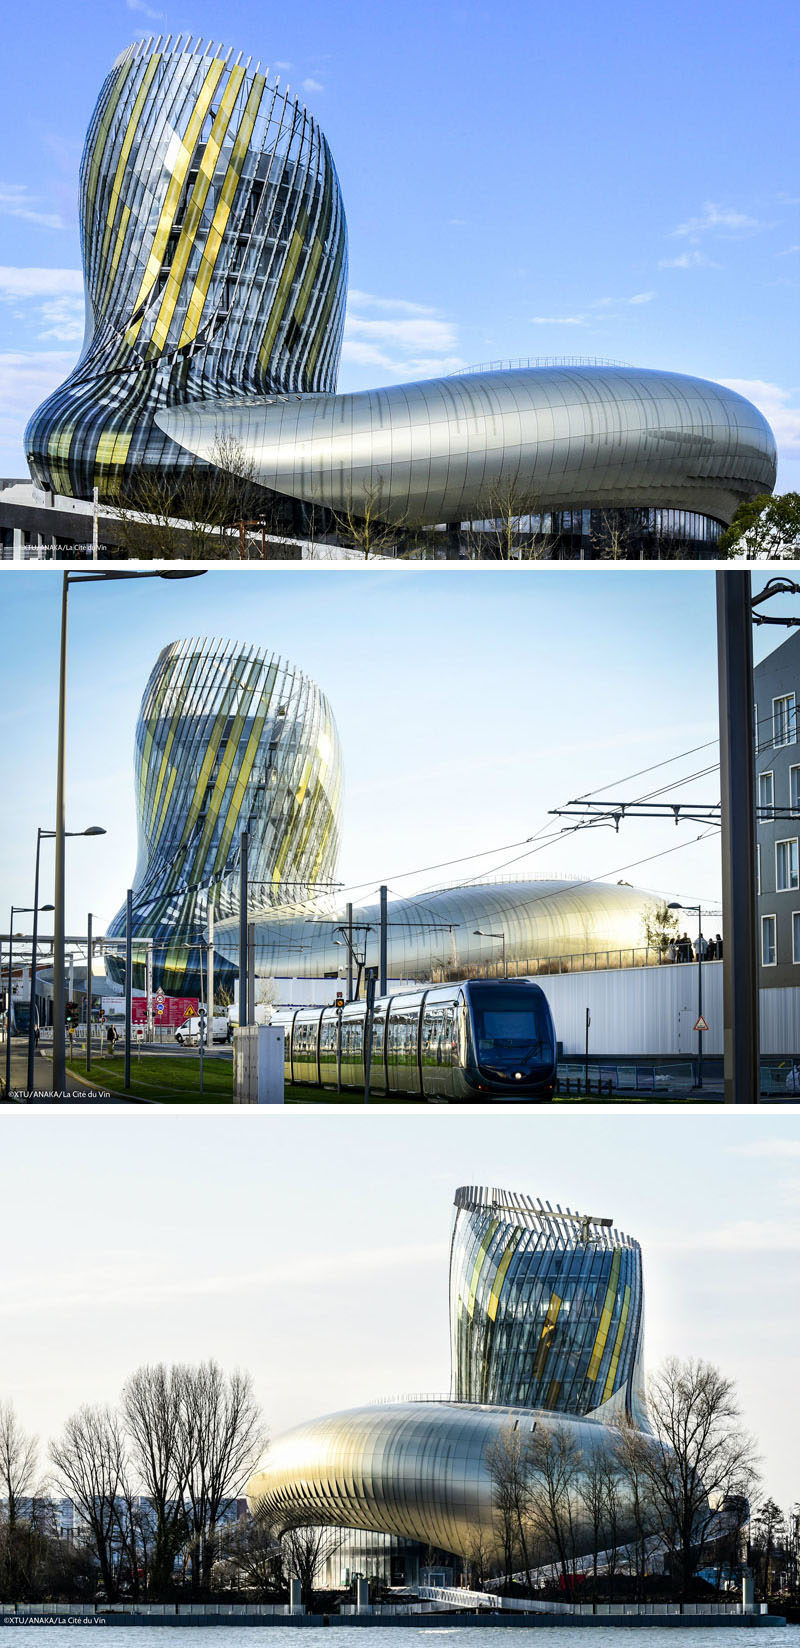 The wine museum and theme park, La Cite du Vin in Bordeaux, France, was given a swirl-like design on the bottom part to symbolize the swirling of wine in a glass, while the tower is meant to represent grapes growing on a vine.